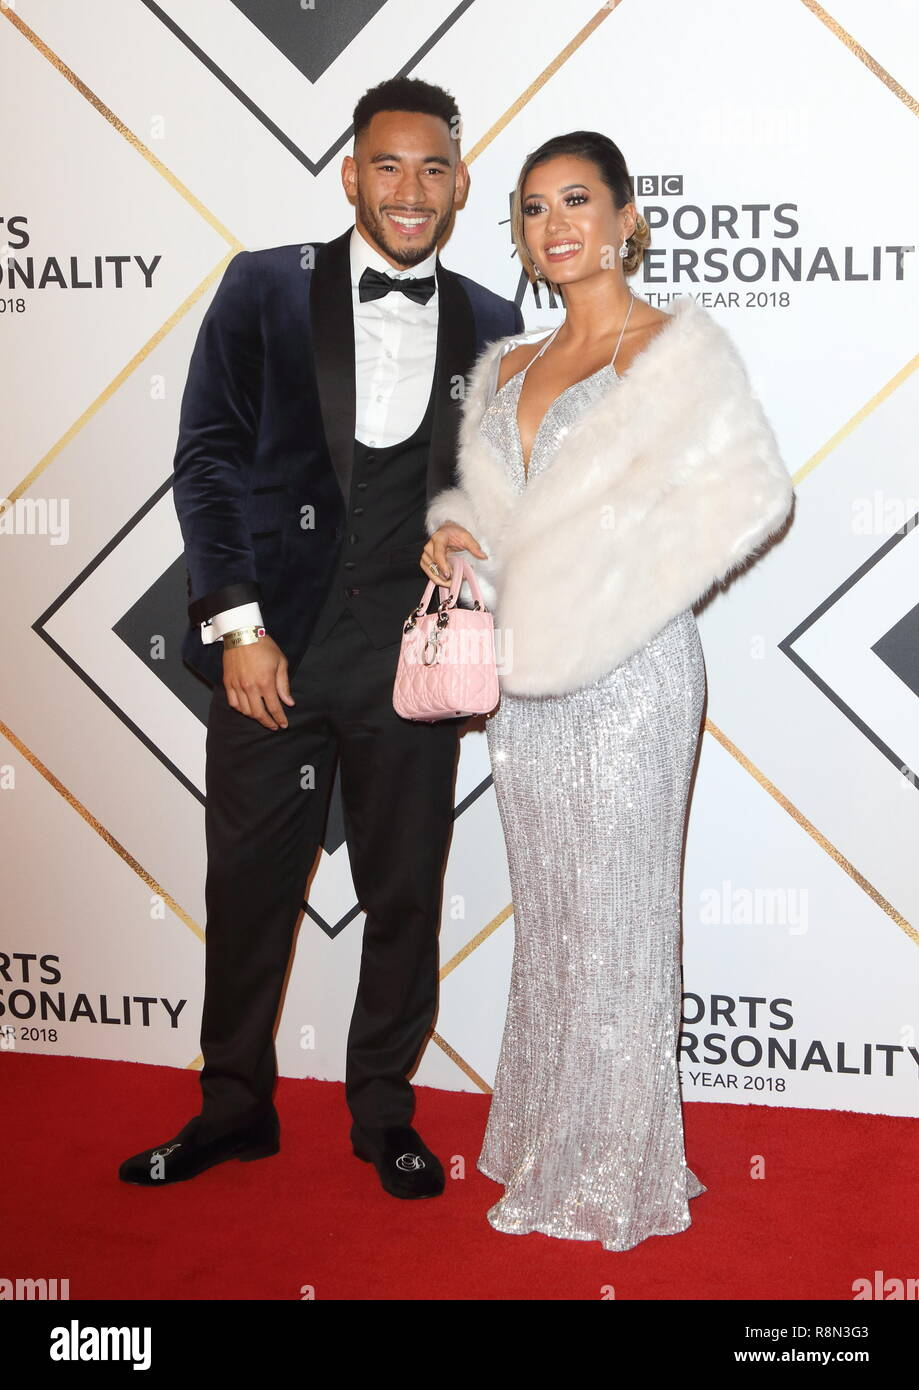 Josh Denzel and Kaz Crossley on the red carpet at the BBC Sports Personality Of The Year 2018 at the Resorts World Arena. - Stock Image